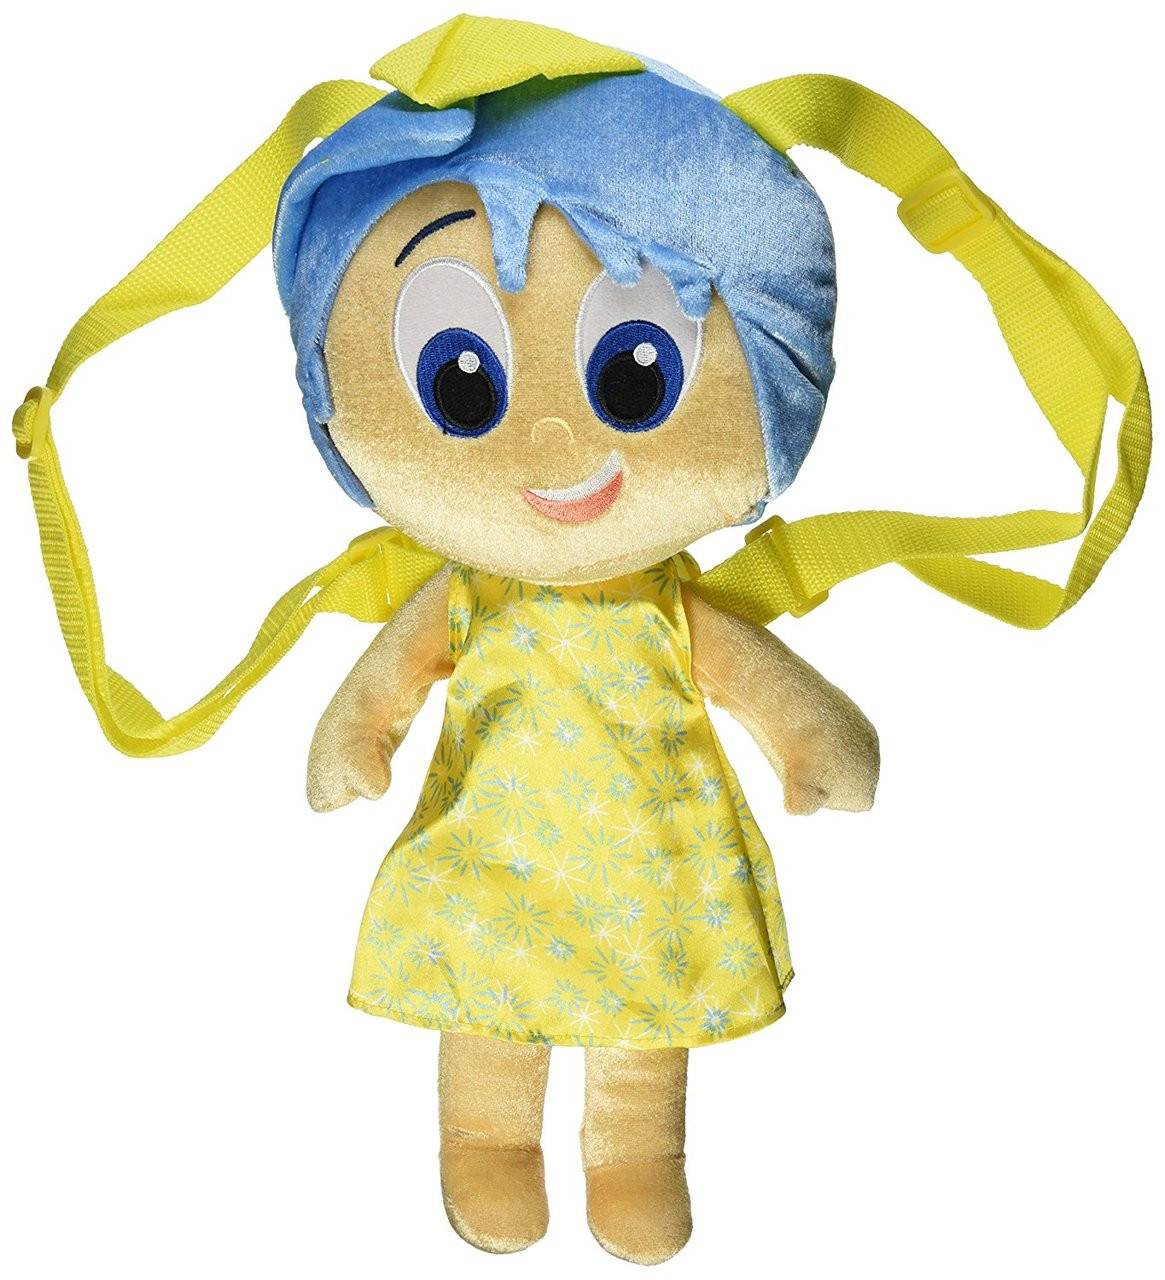 Inside Out Large Plush Backpack - Joy